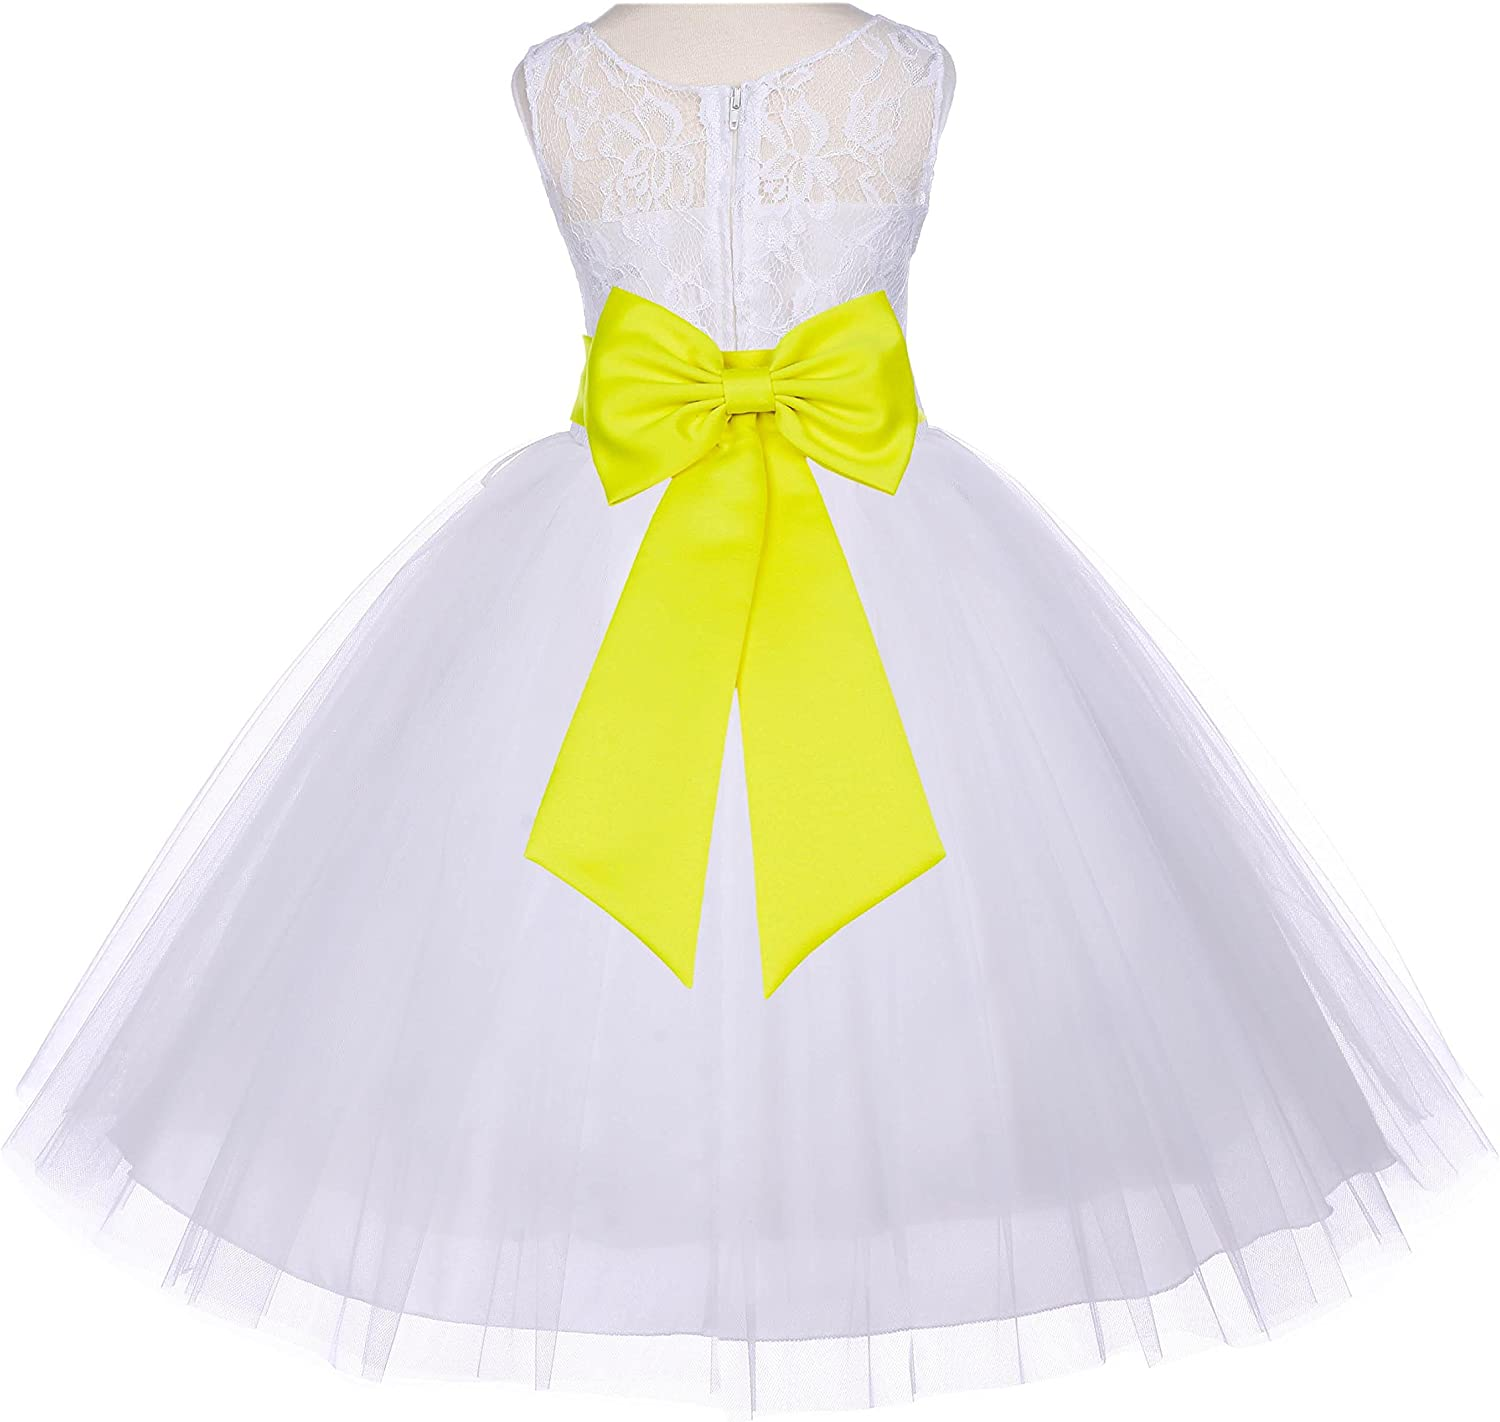 Wedding Pageant Sleeveless Lace Bodice Ivory Tulle Flower Girl Dress 153T